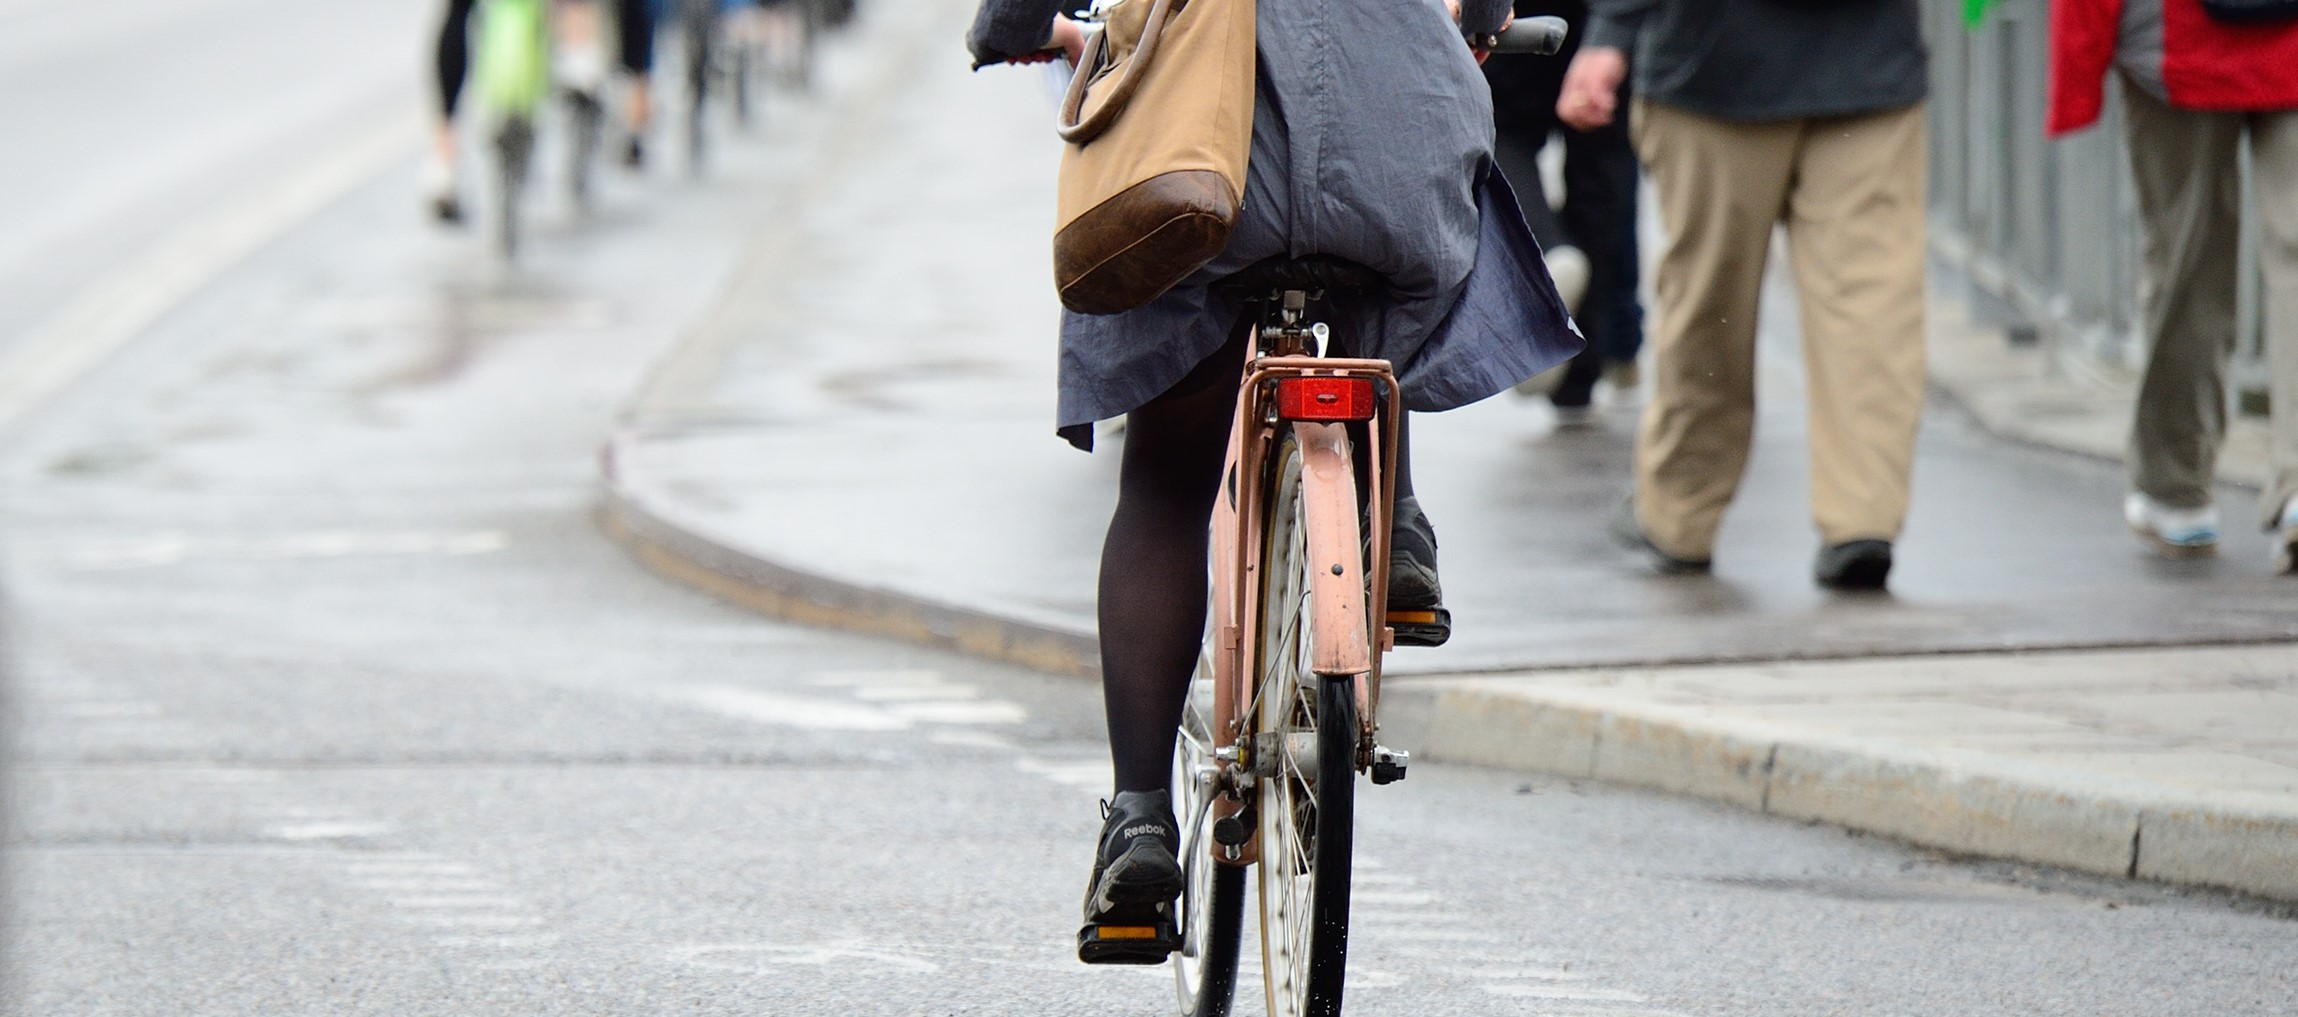 Blog: Kick the car: the lifestyle change for cleaner air